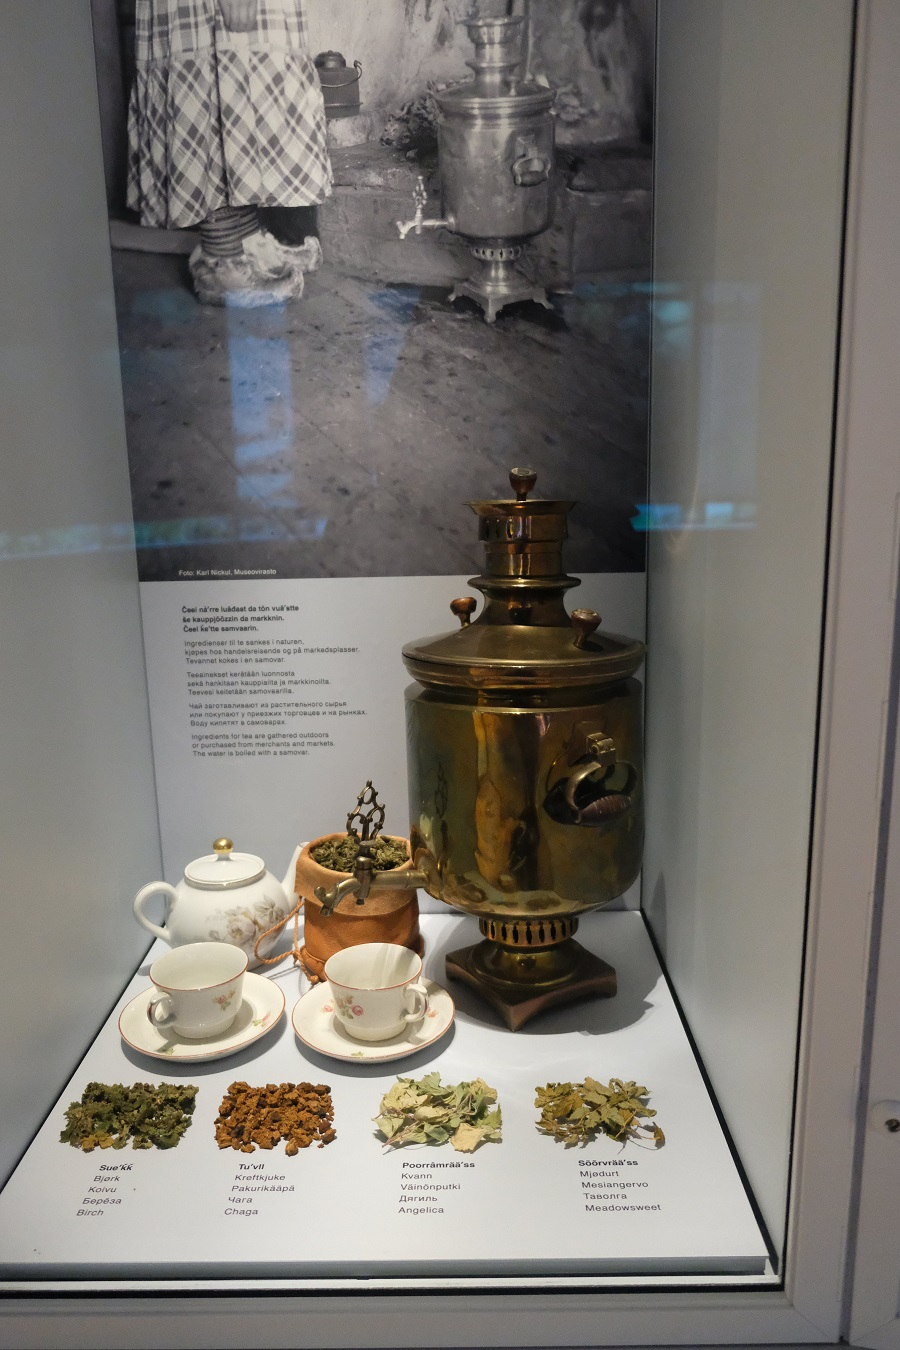 A samovar used by the Skolt Sami, highlighting the blending of Russian and Sami cultures.